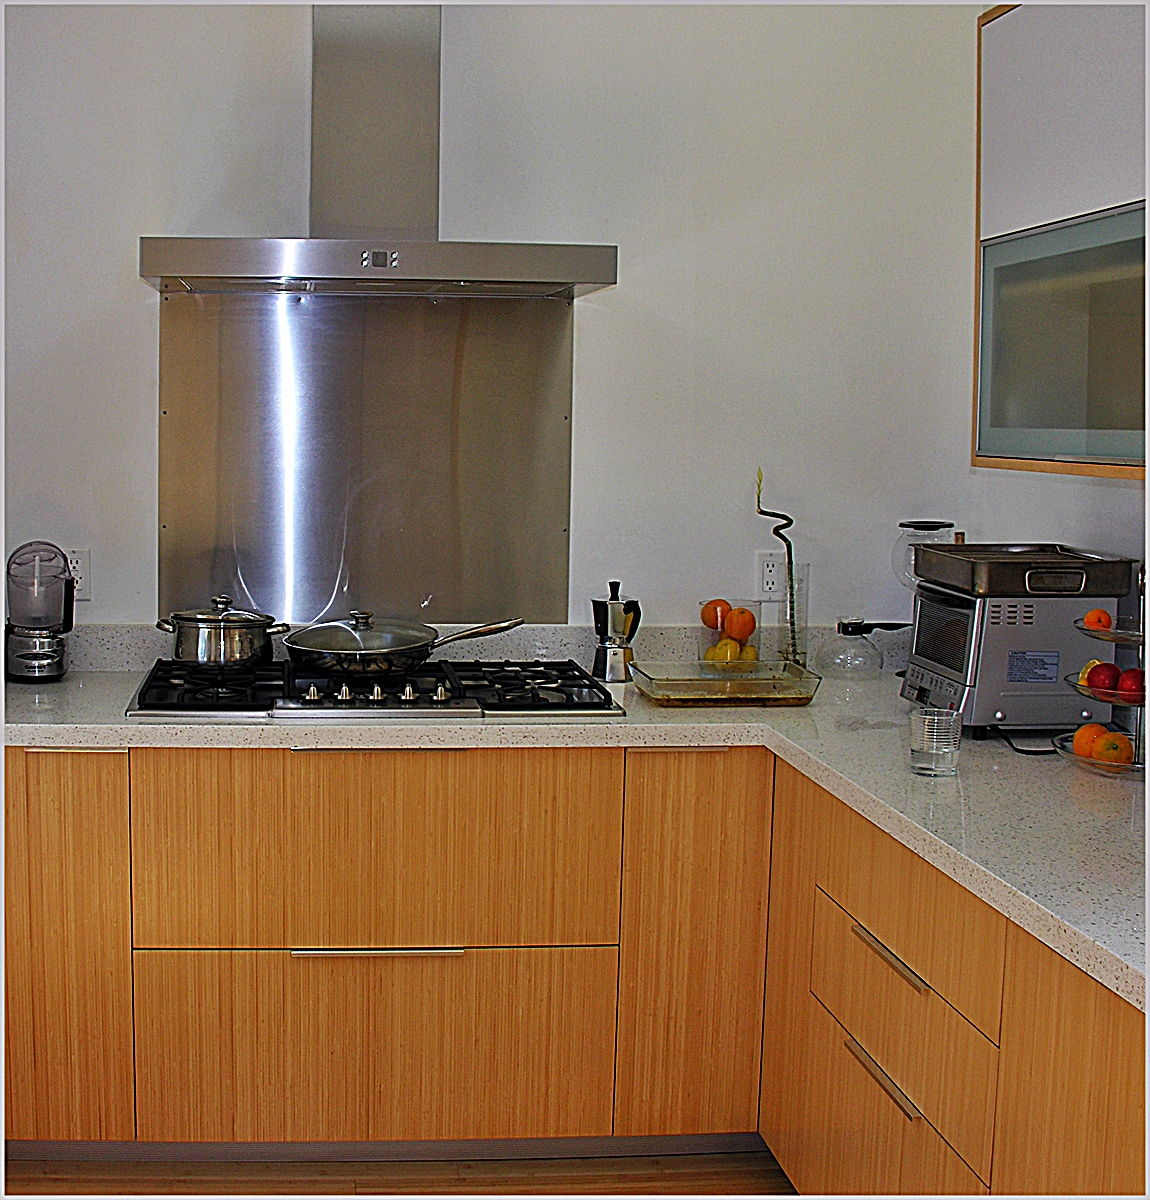 Kitchen sink garbage disposal interior home design is for Bamboo kitchen cabinets for sale